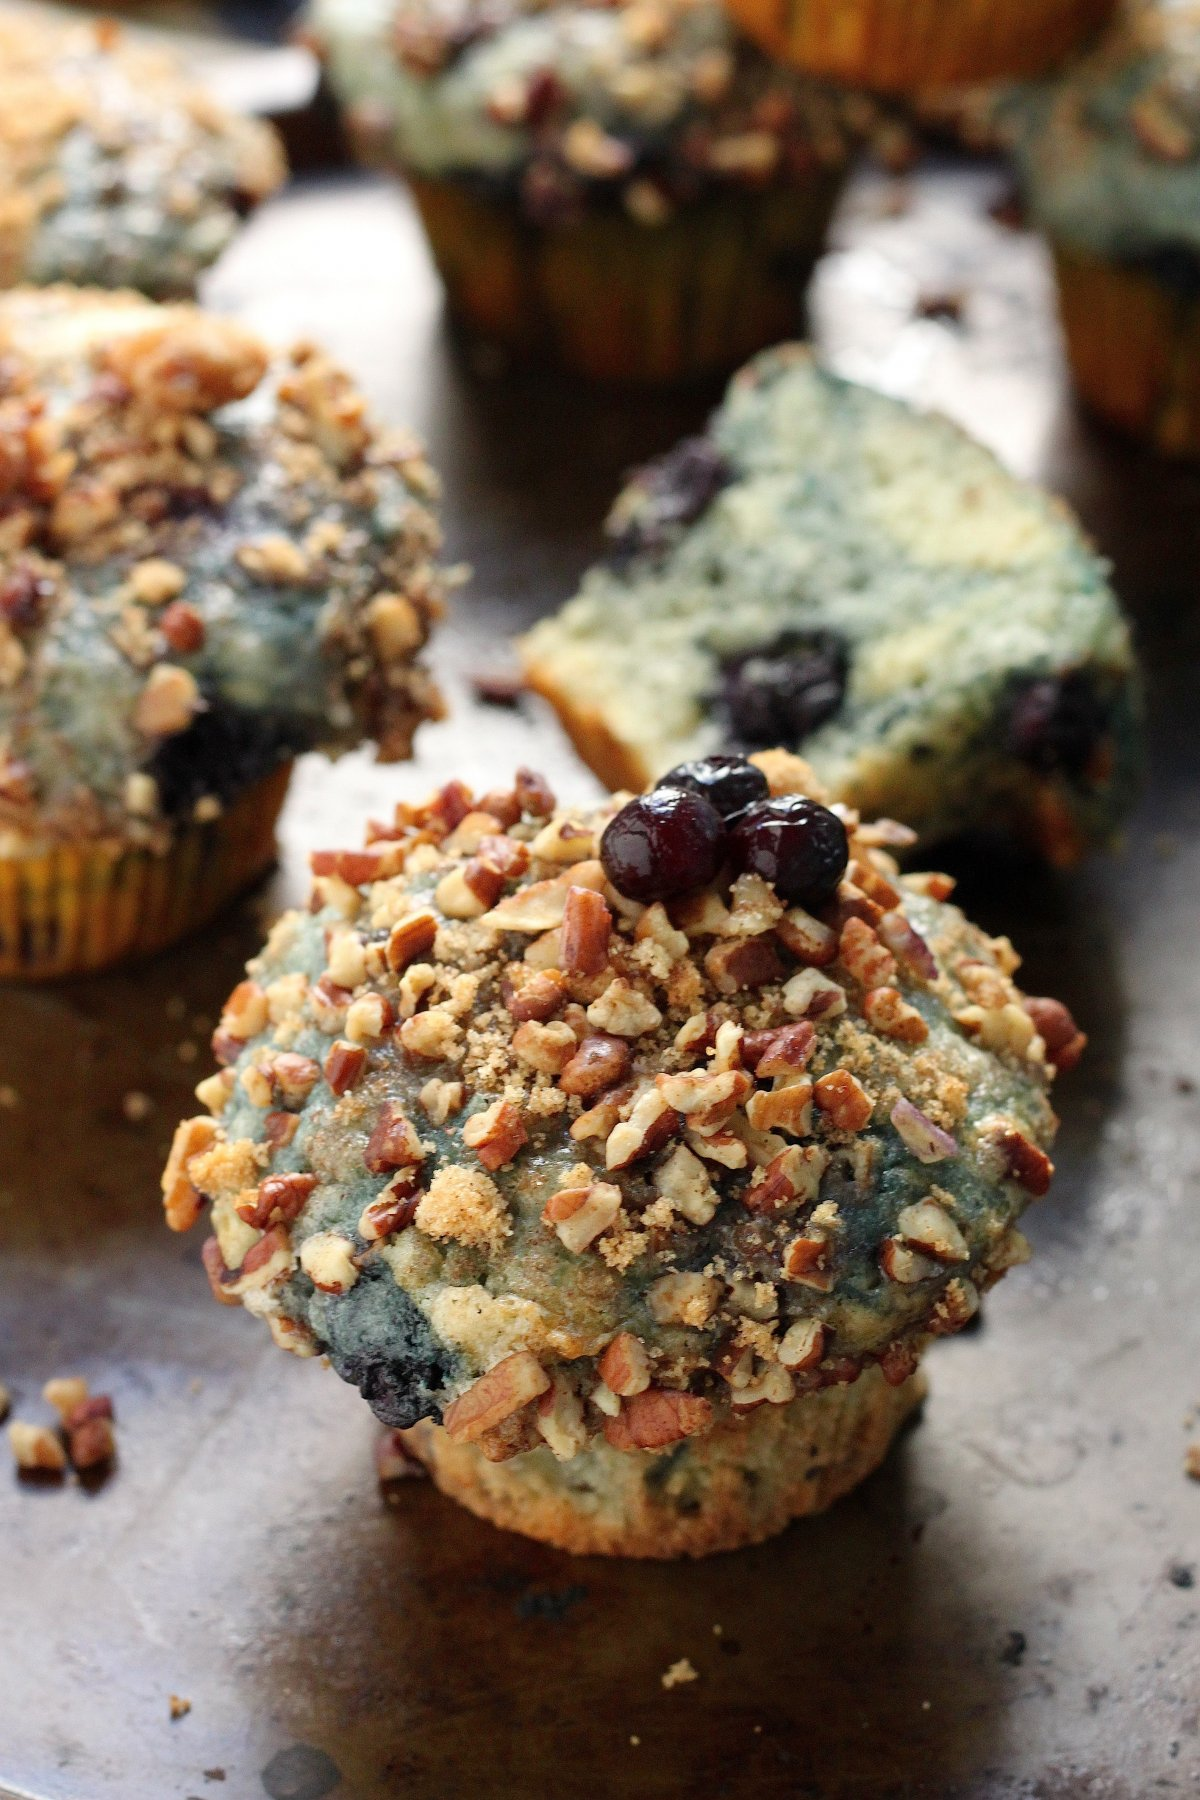 Greek Yogurt Blueberry Crumble Muffins